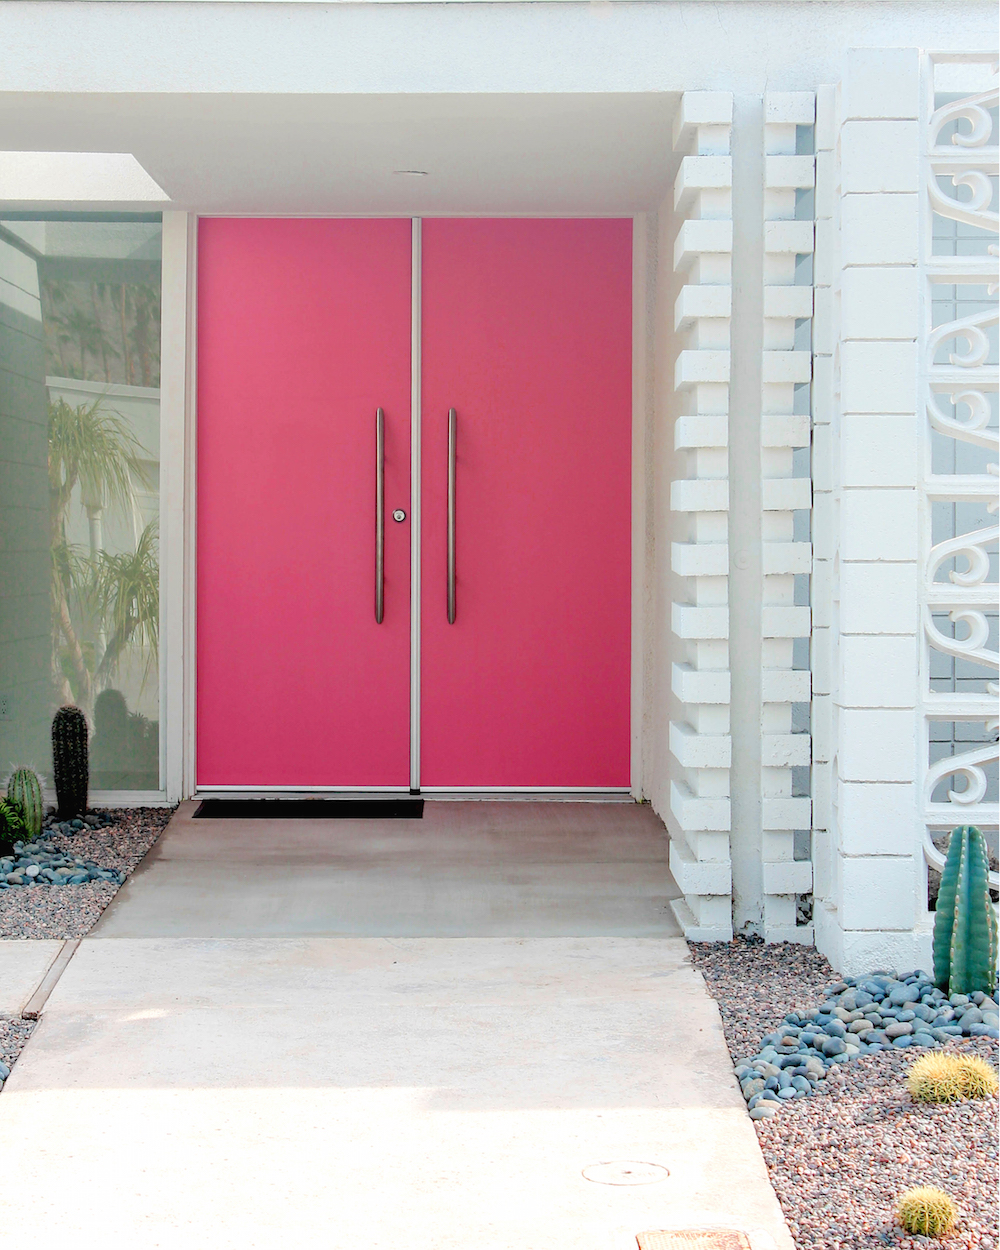 THE DOORS OF PALM SPRINGS - Design Darling